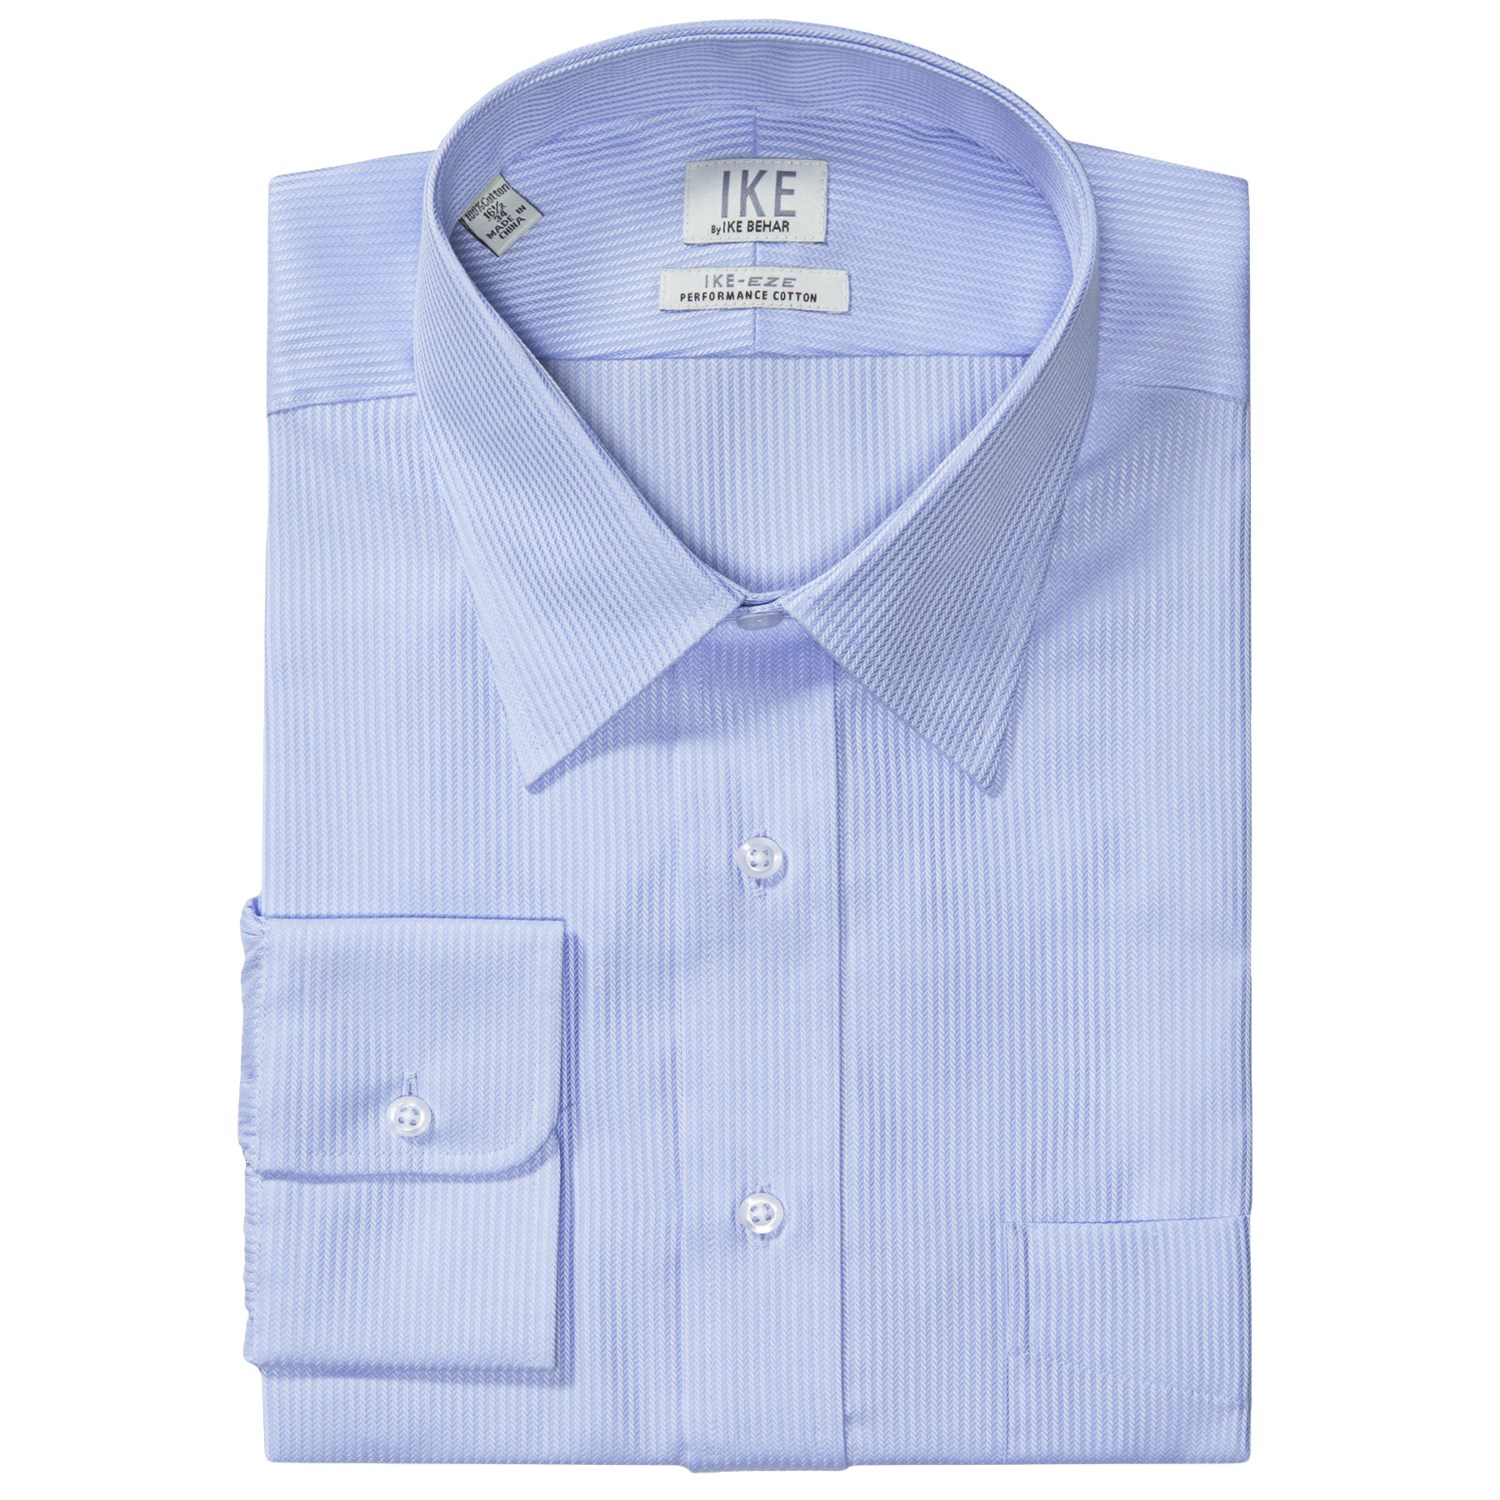 Ike by ike behar herringbone dress shirt no iron cotton for Mens no iron dress shirts